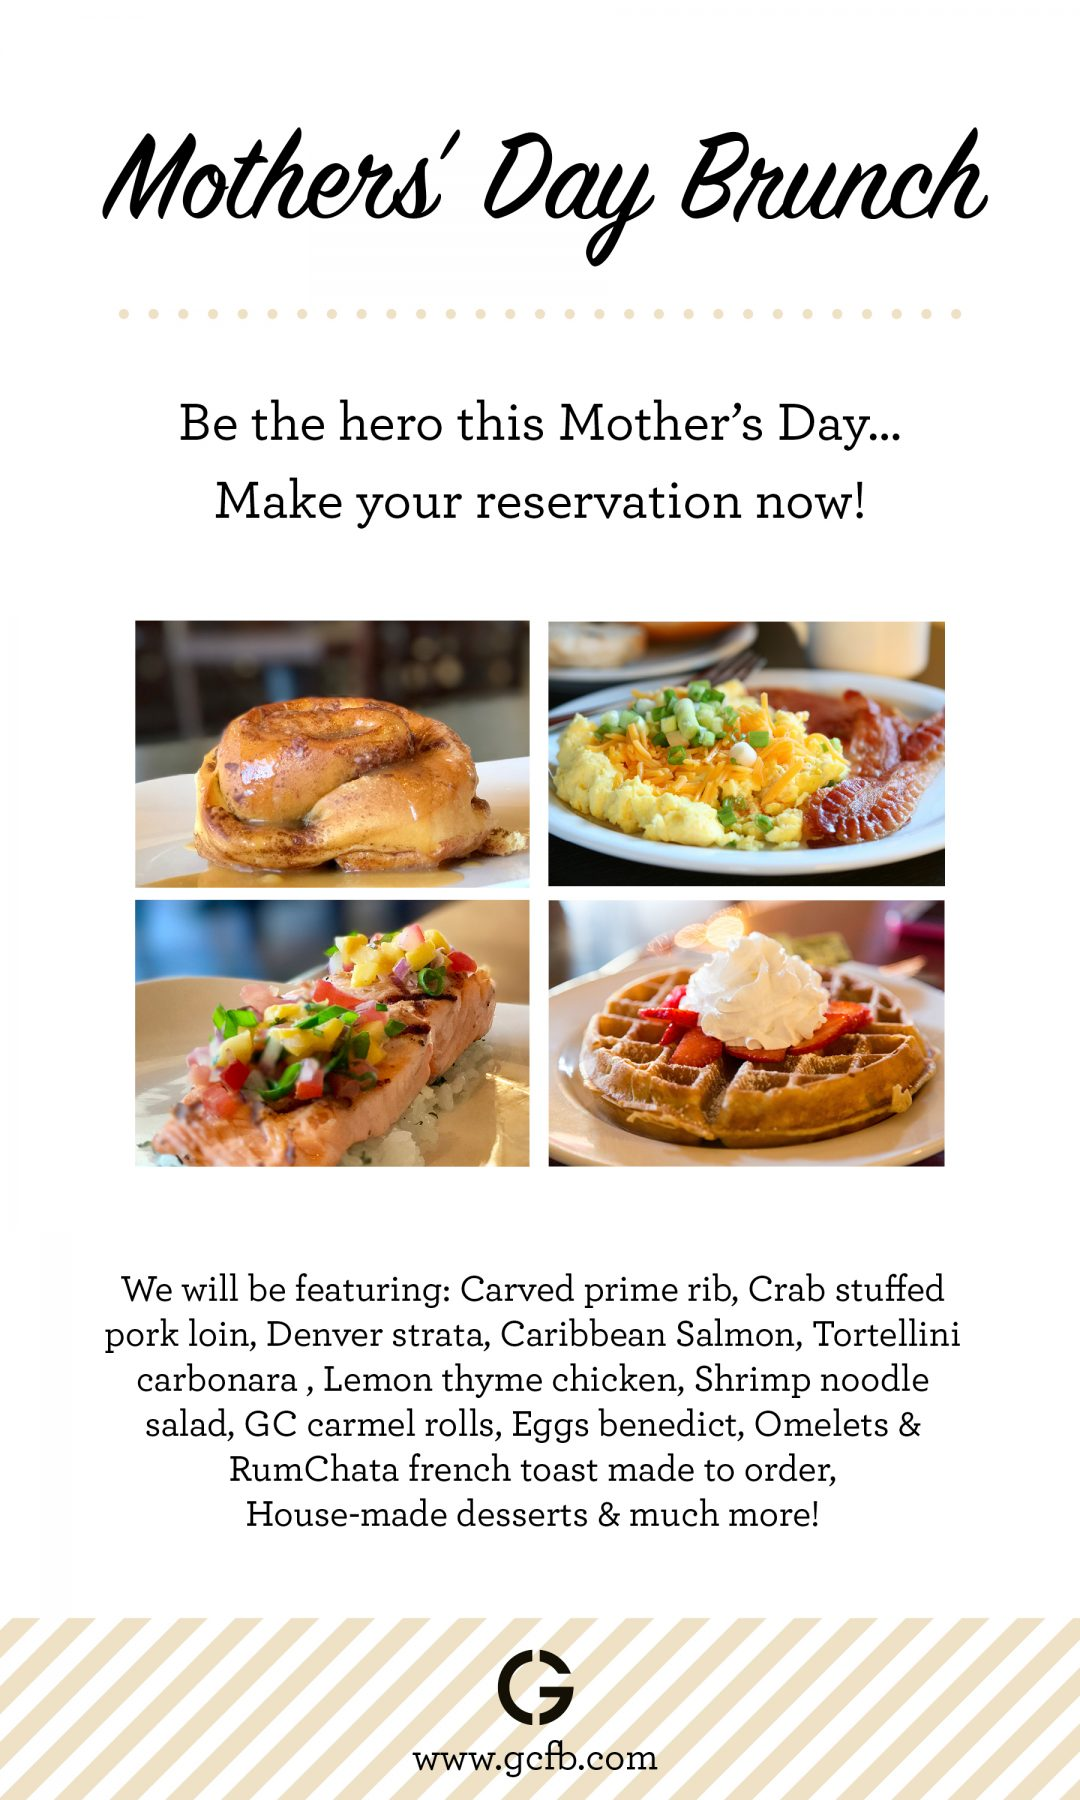 Mother's Day Brunch May 14, 2017